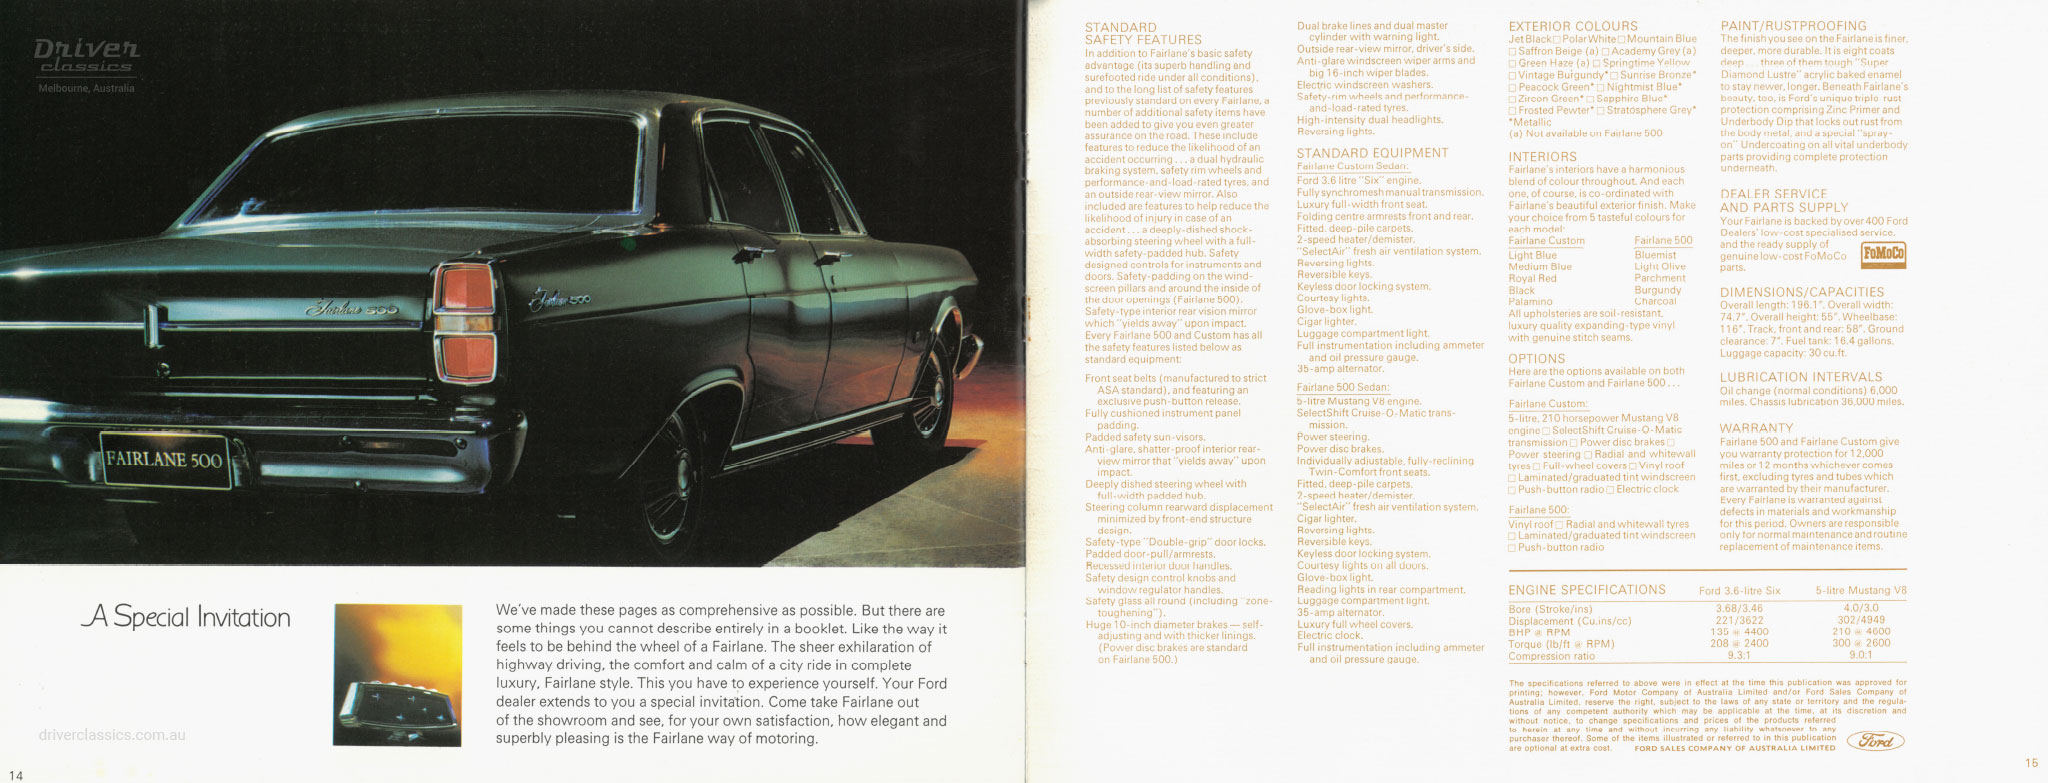 Page from 1968 Ford Fairlane 500 brochure